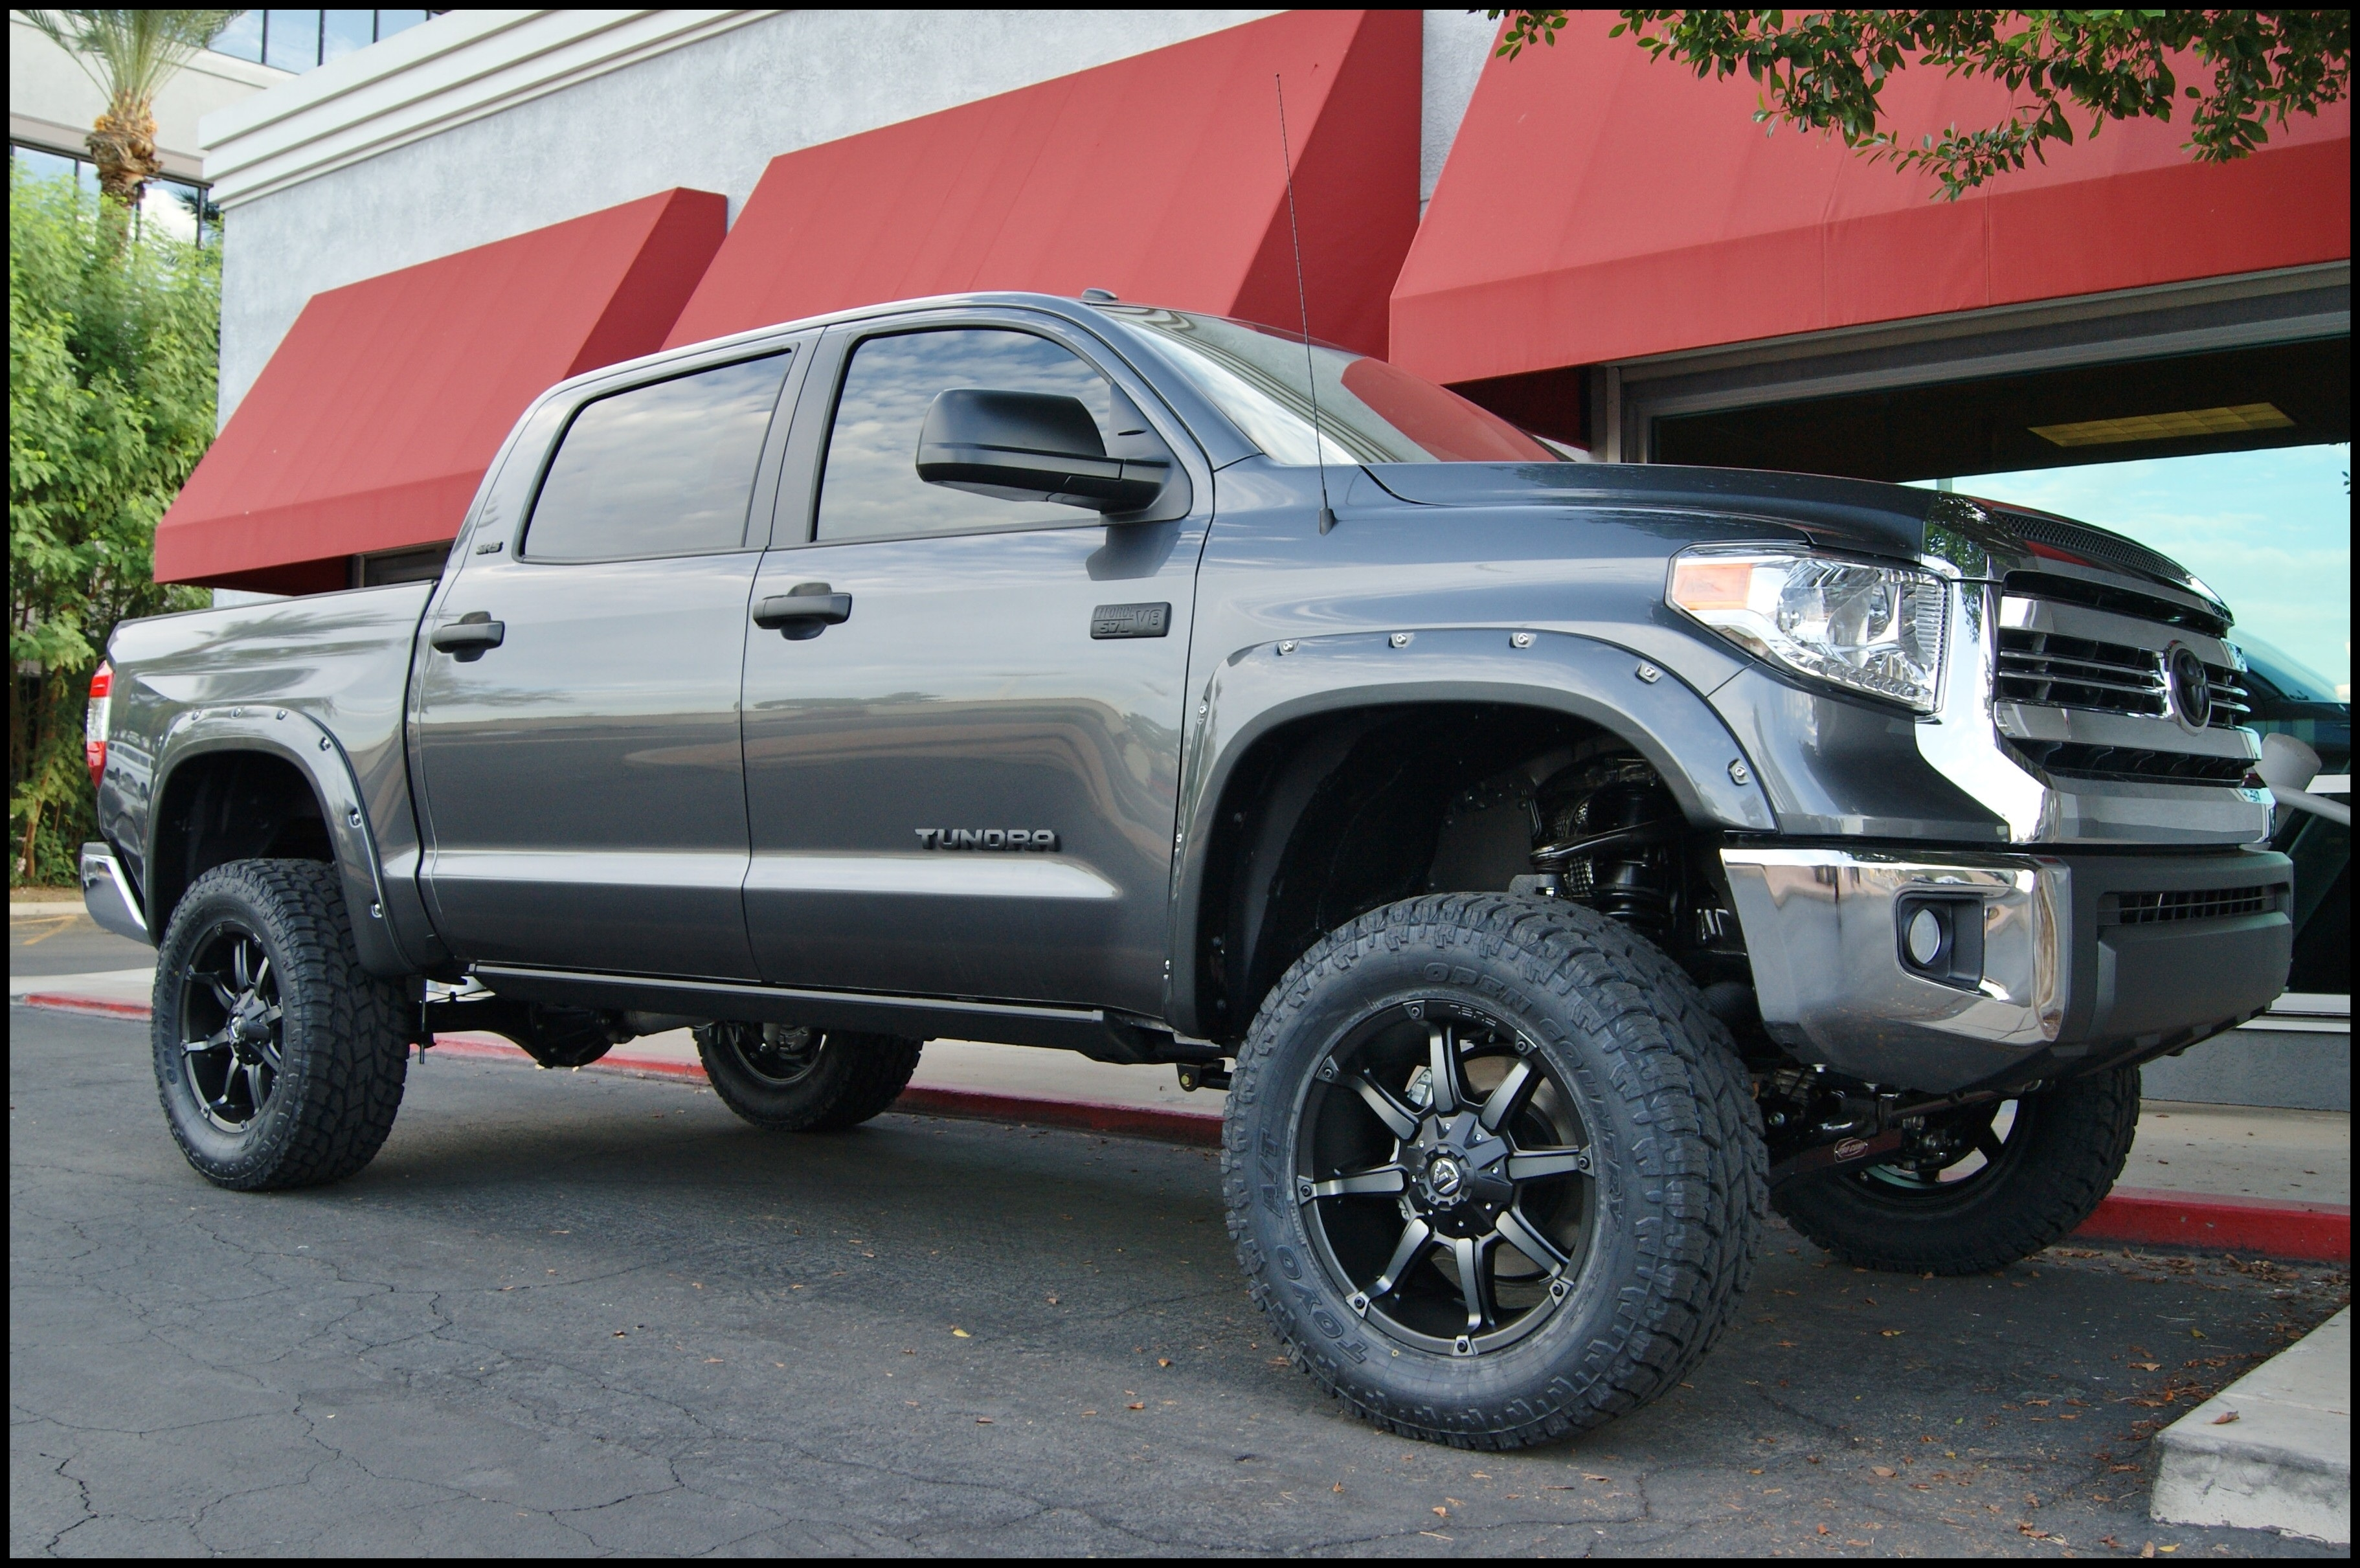 Inch Lift Kit Reviews Top 2017 toyota Trucks Beautiful 2017 toyota Tundra Gray Sr5 Crewmax Pro New Exterior